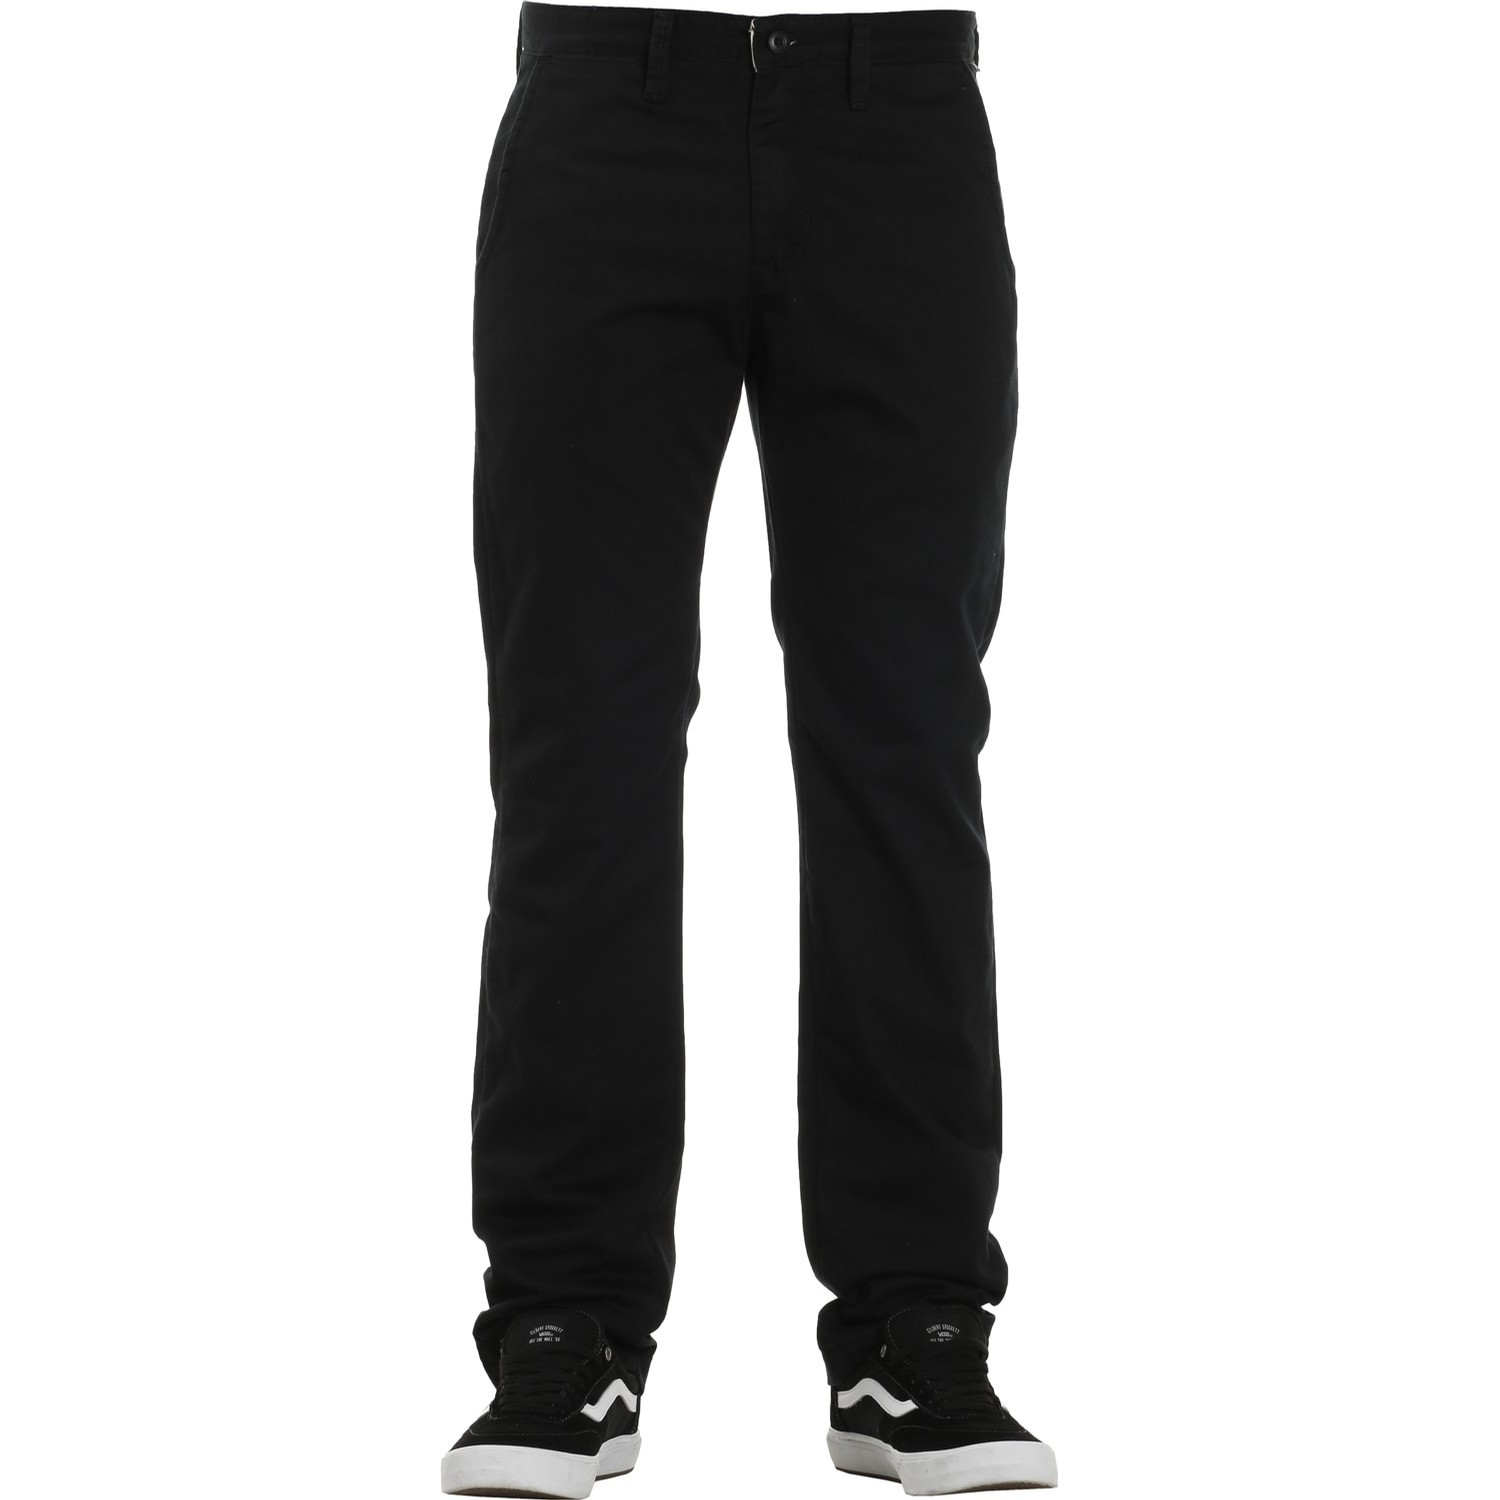 Authentic Chino Stretch Pant (Black)